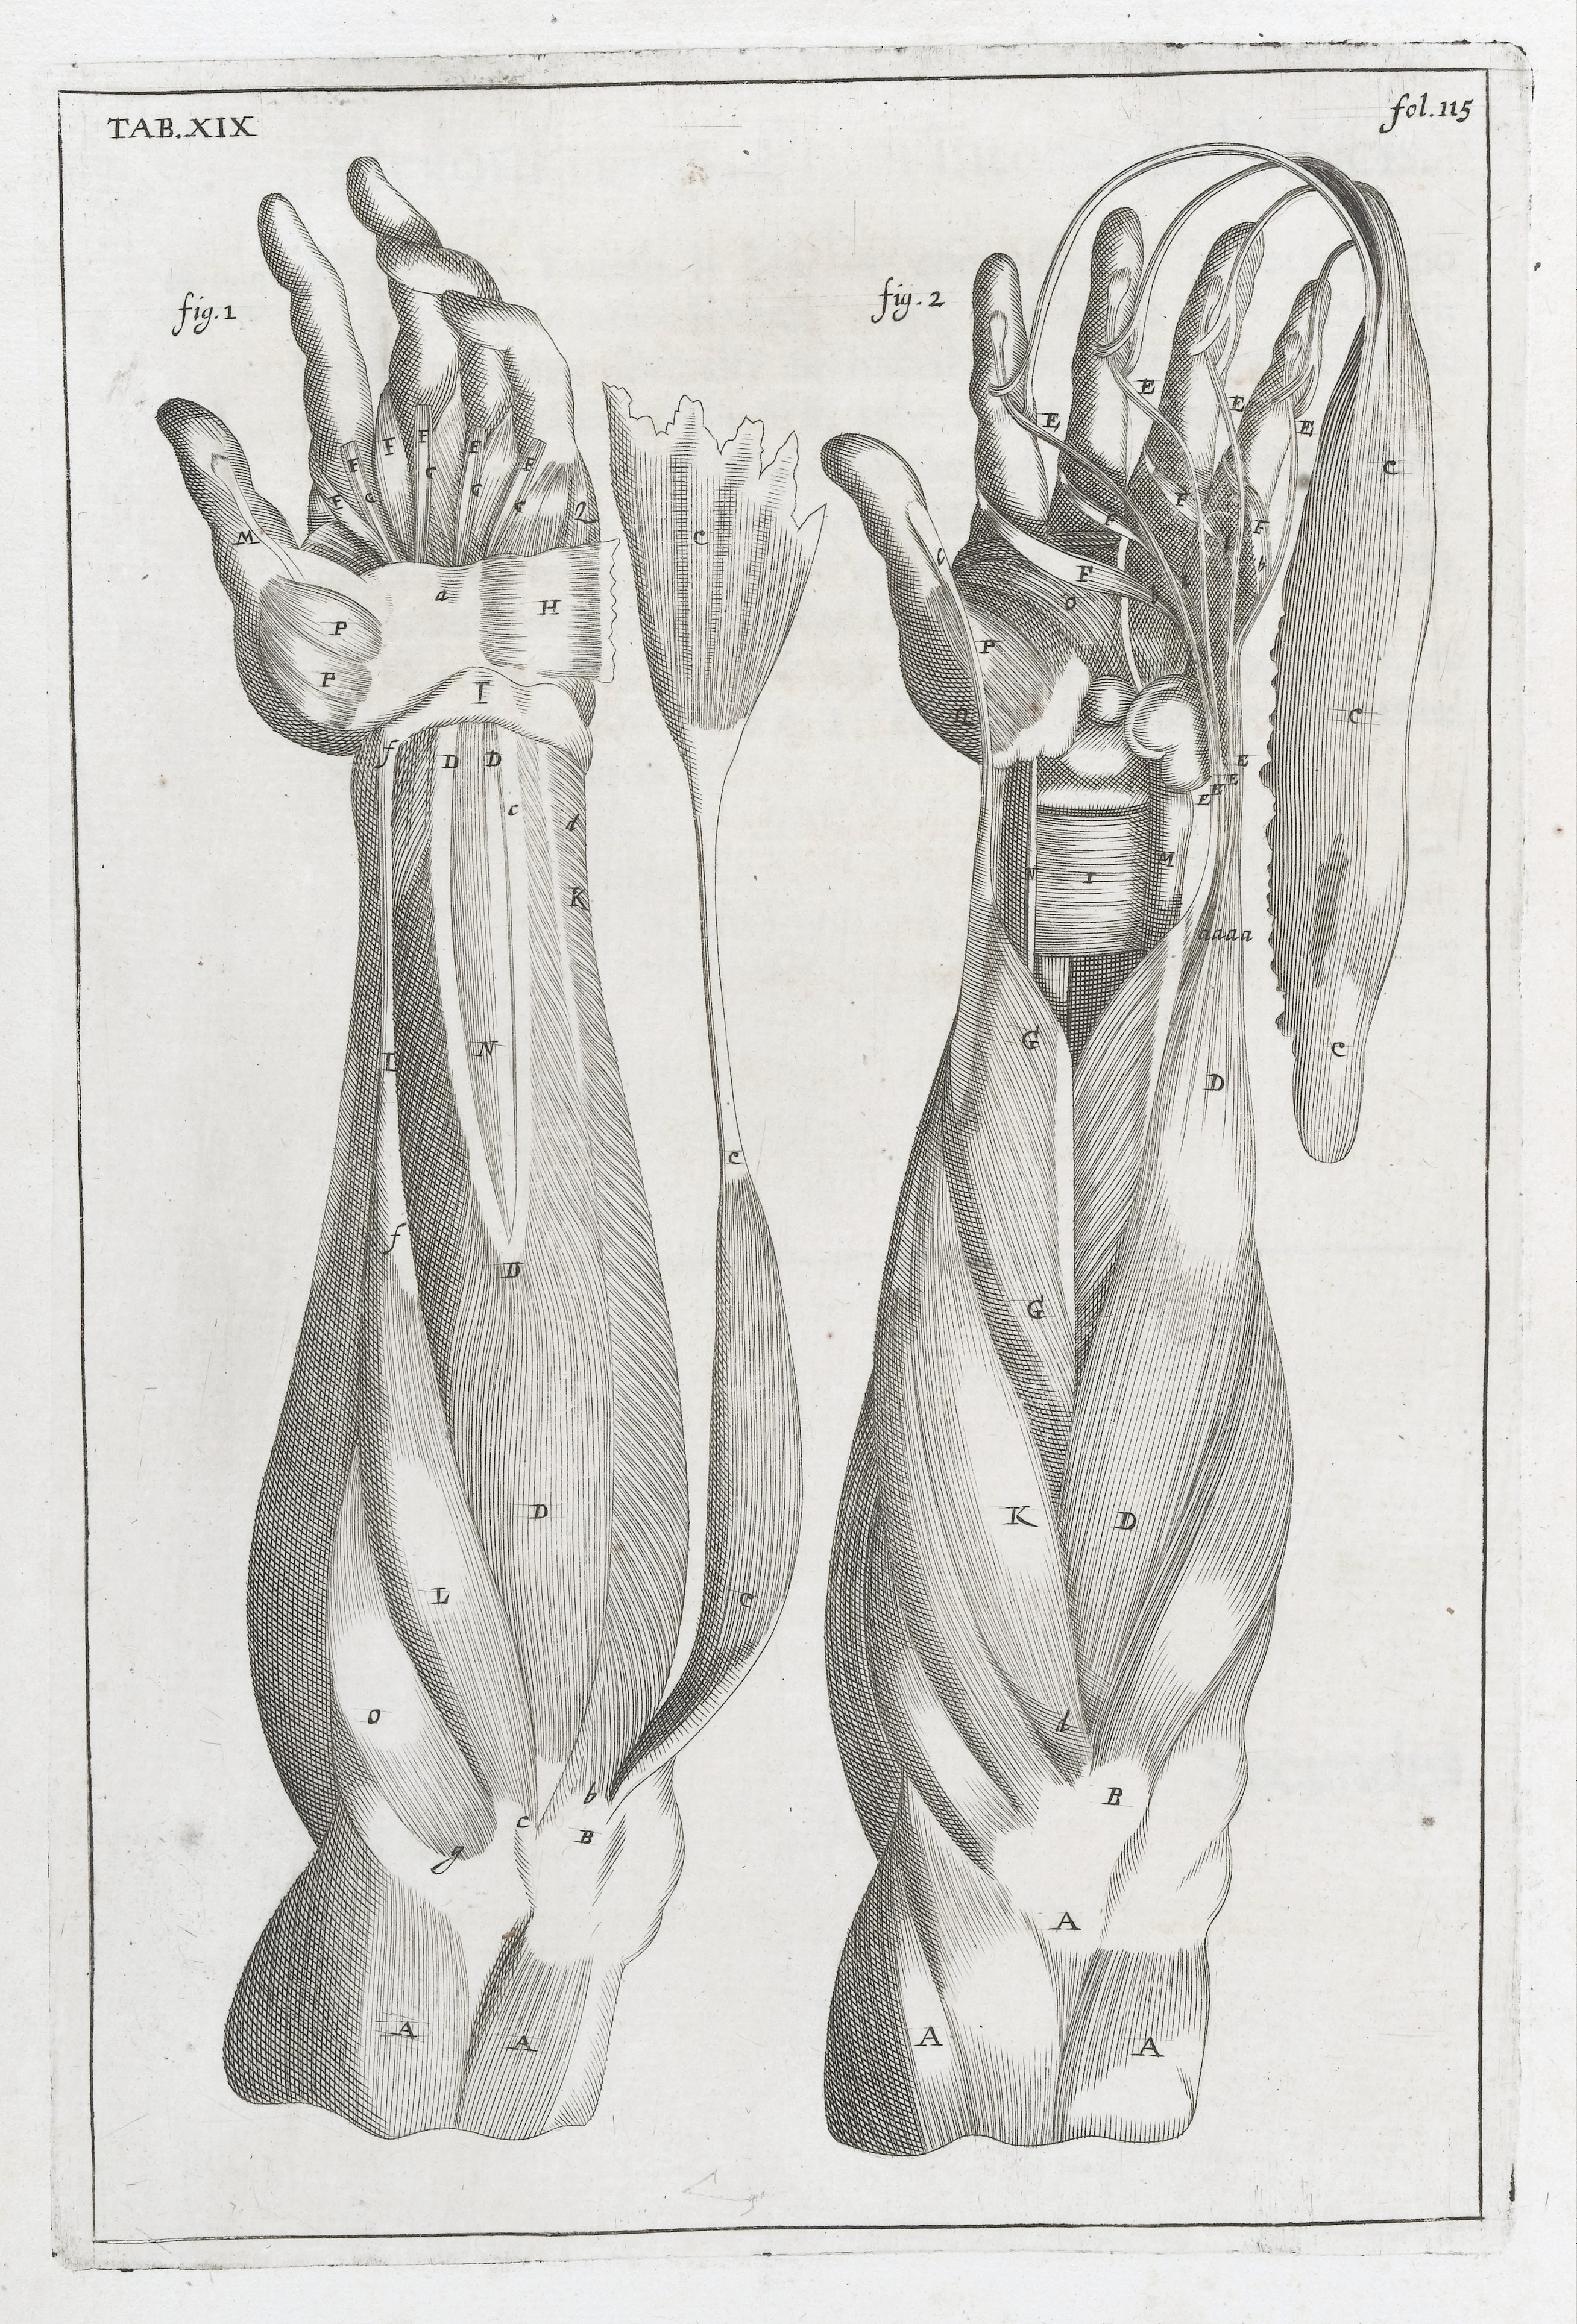 Fileanatomical Illustrations Showing Muscles Of The Lower Arm